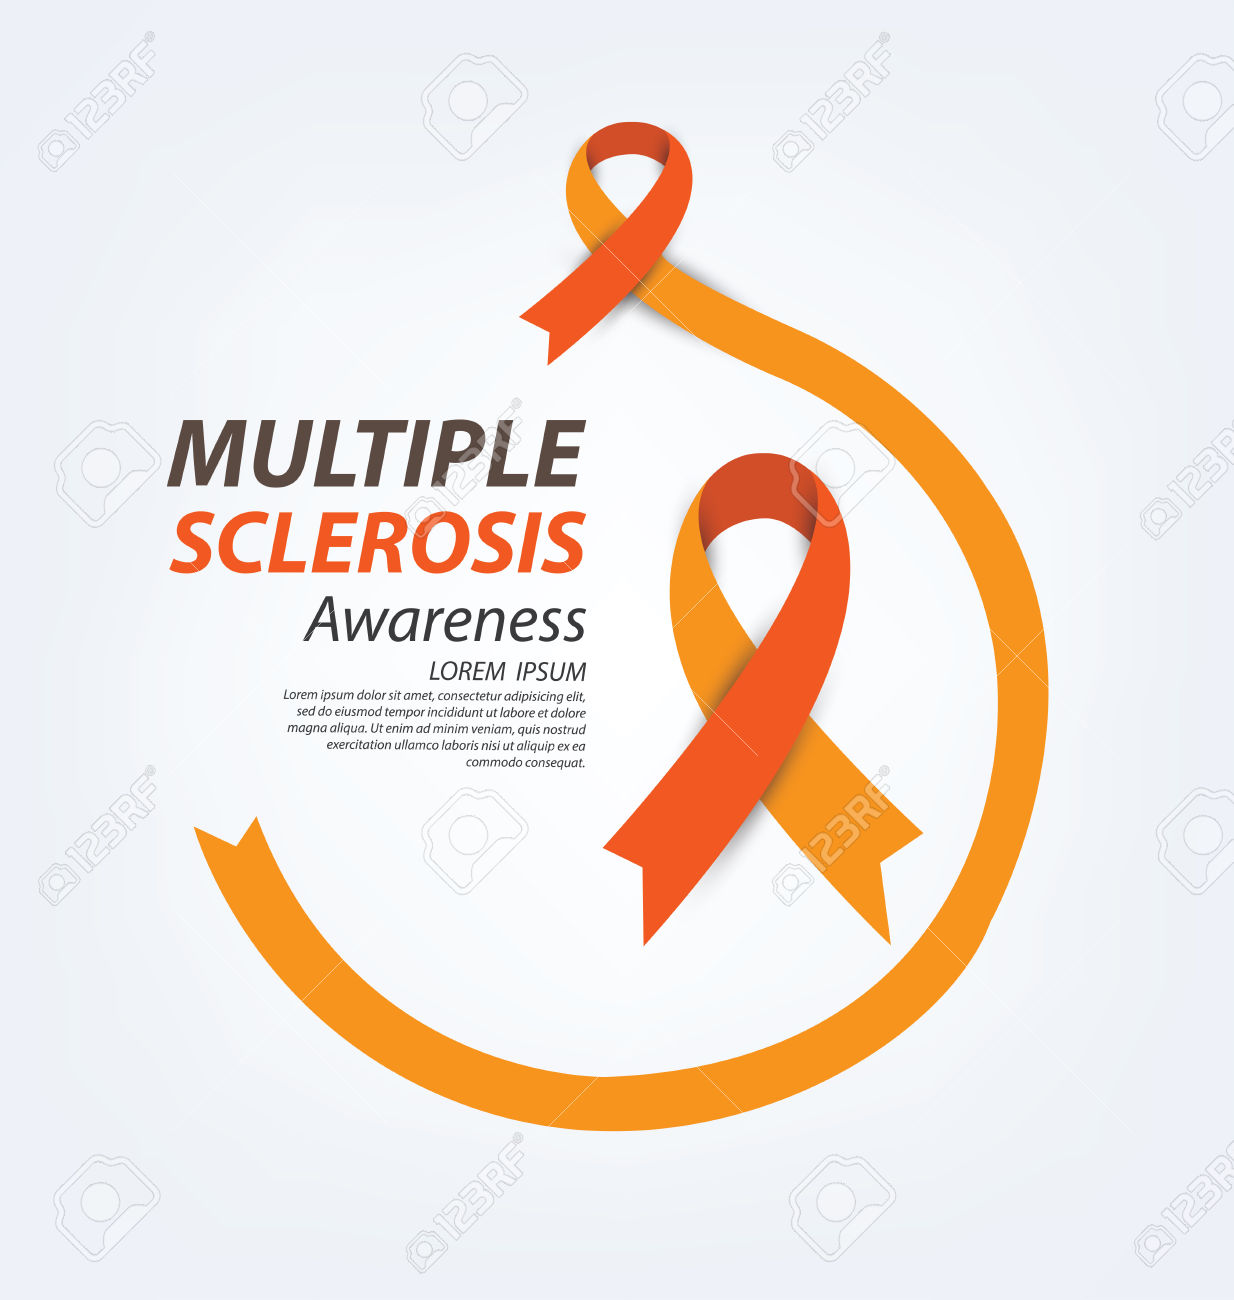 28+ Best World Multiple Sclerosis Day 2017 Images. Indirect Air Carrier Management System. Comcast Security Alarm Auto Ac Repair Houston. Air Duct Cleaning Miami Fl Raleigh Nc Movers. Zoho Projects Alternative Executive Auto Body. How To Create A Website For Free With Com. Animal Removal Nashville Outlook Backup Addin. Iso Internal Auditor Training. Big Machines Salesforce Send Email To Evernote